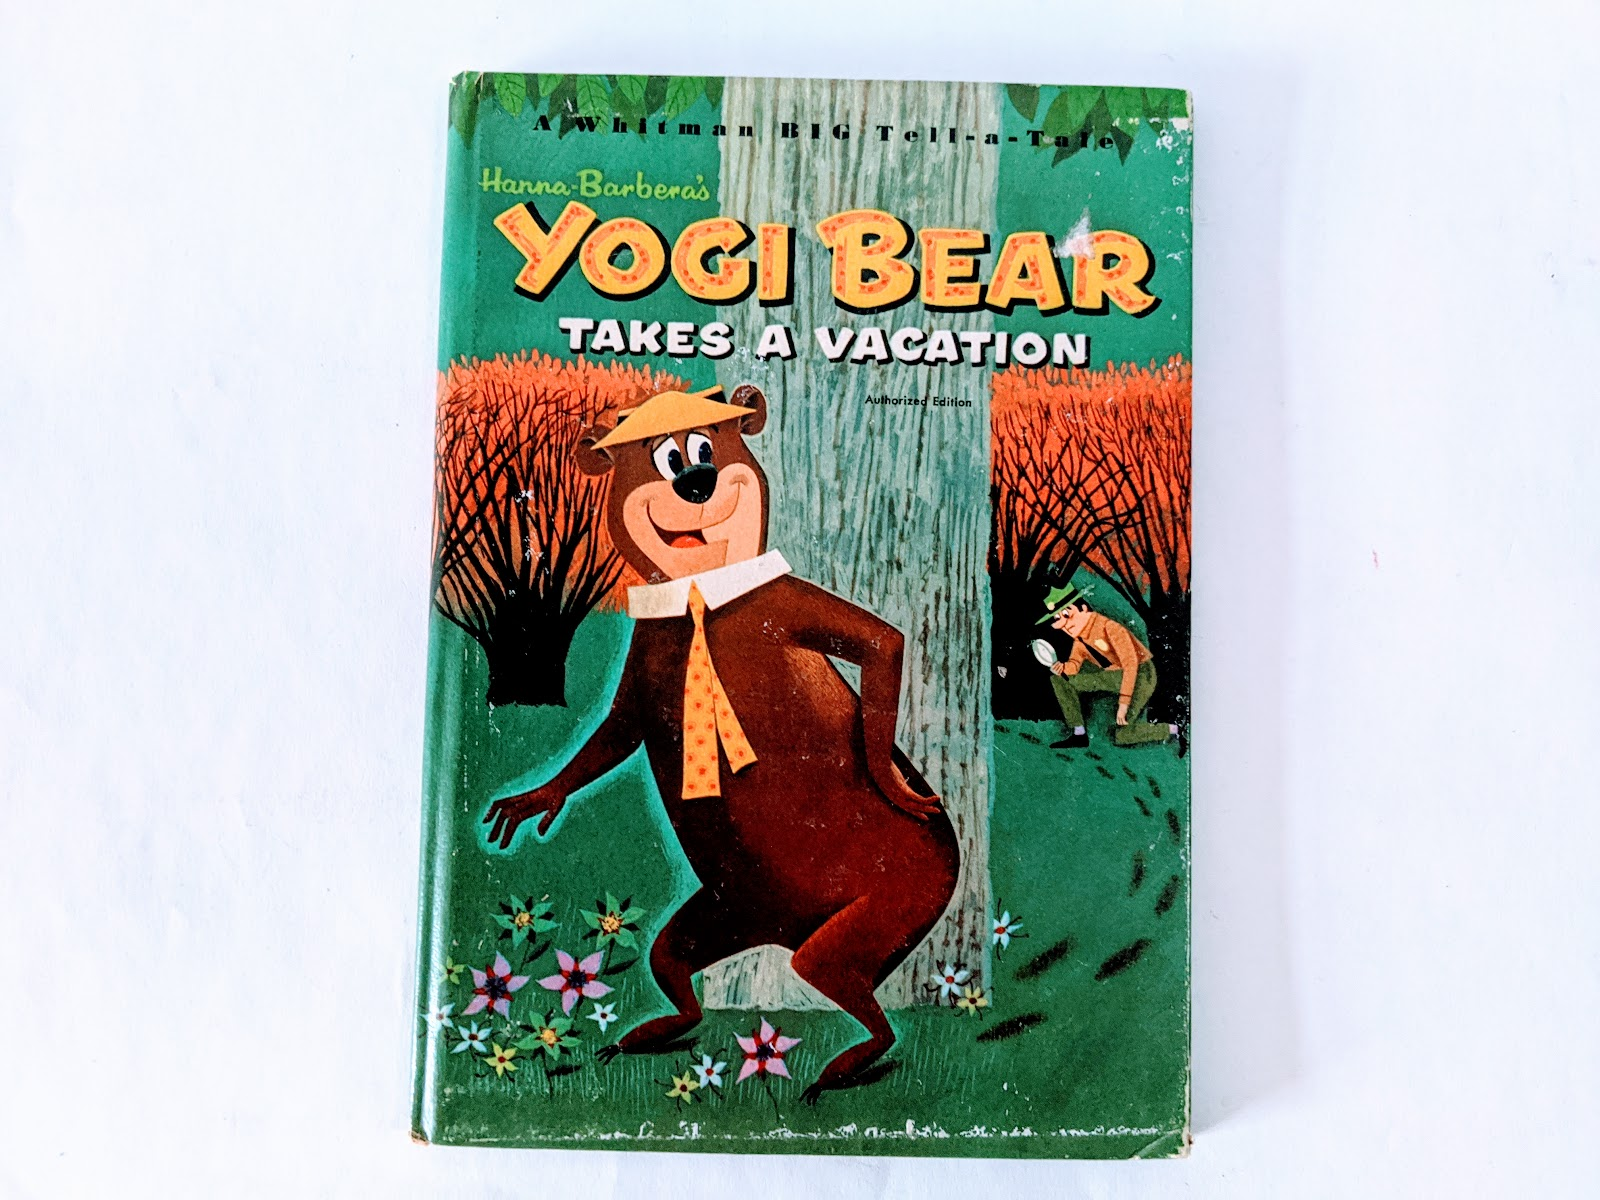 picture of yogi bear children's book on a white background